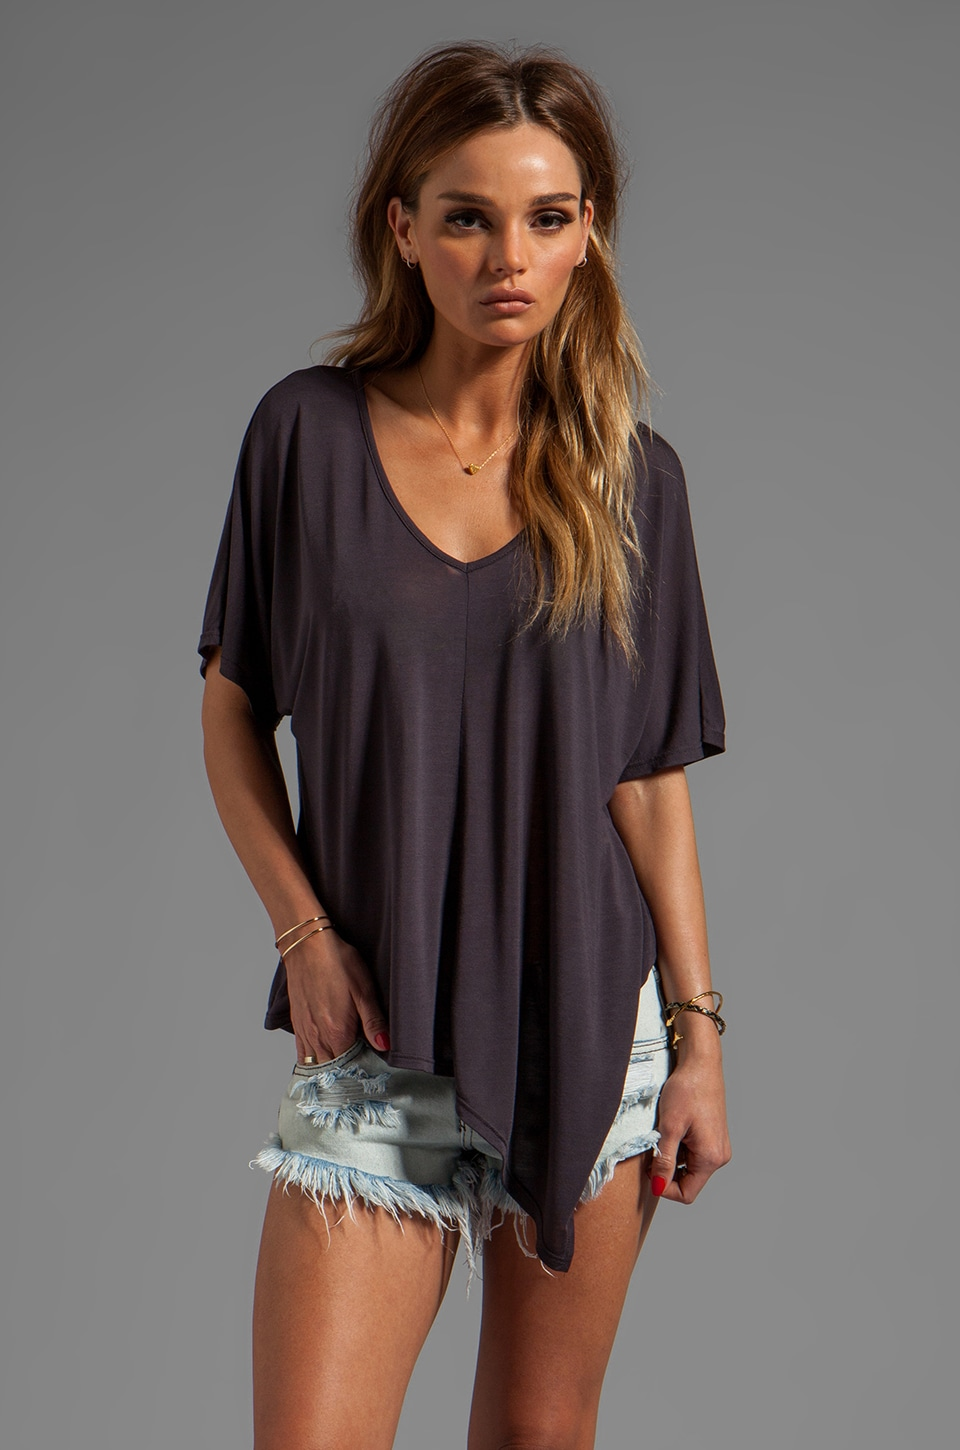 Blue Life Uneven Hem Top in Faded Black